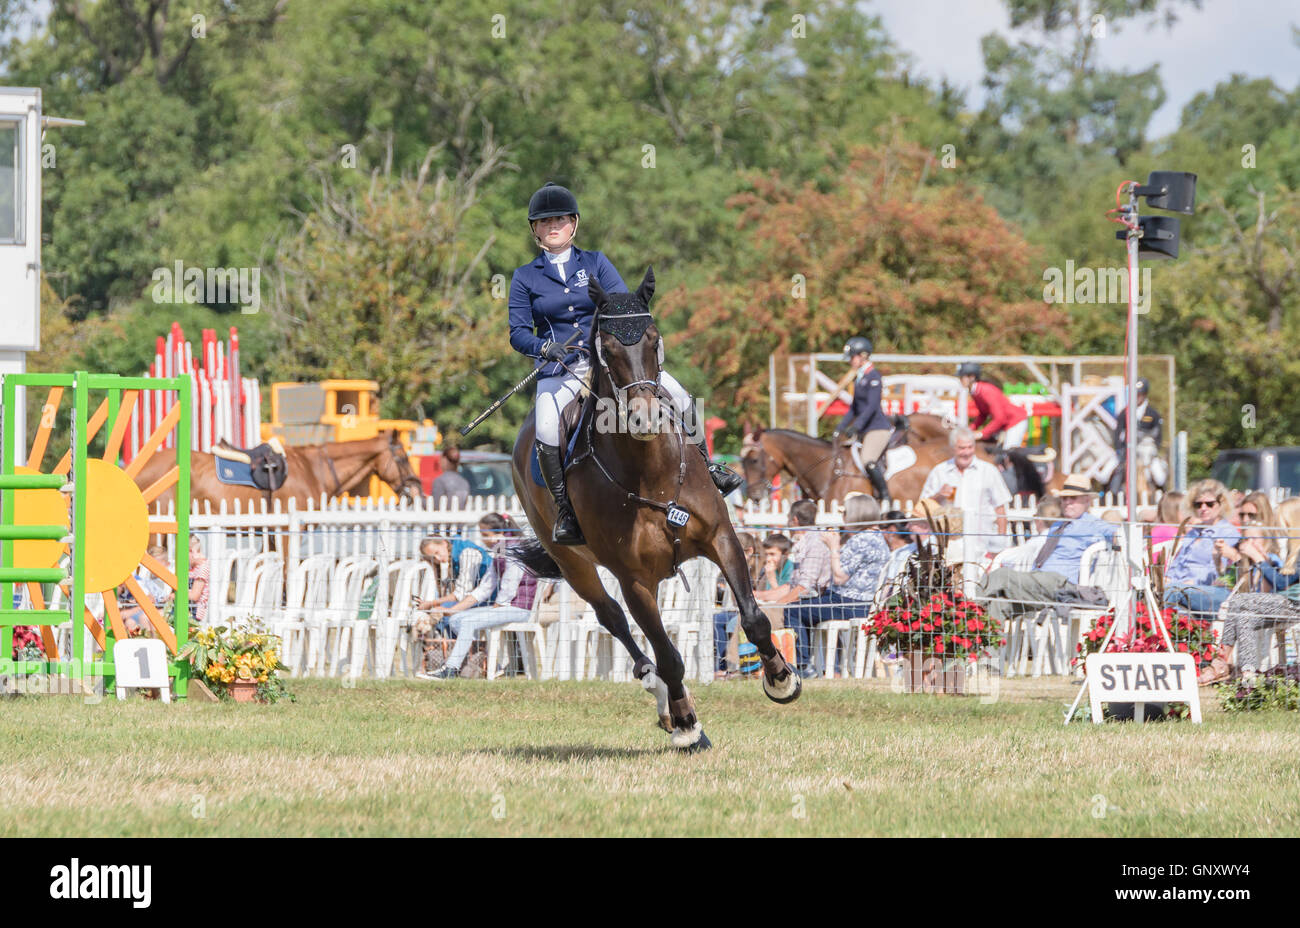 The Bucks County Show, Area Trial showjumping Ridden Hunter Championship Credit:  Scott Carruthers/Alamy Live News - Stock Image